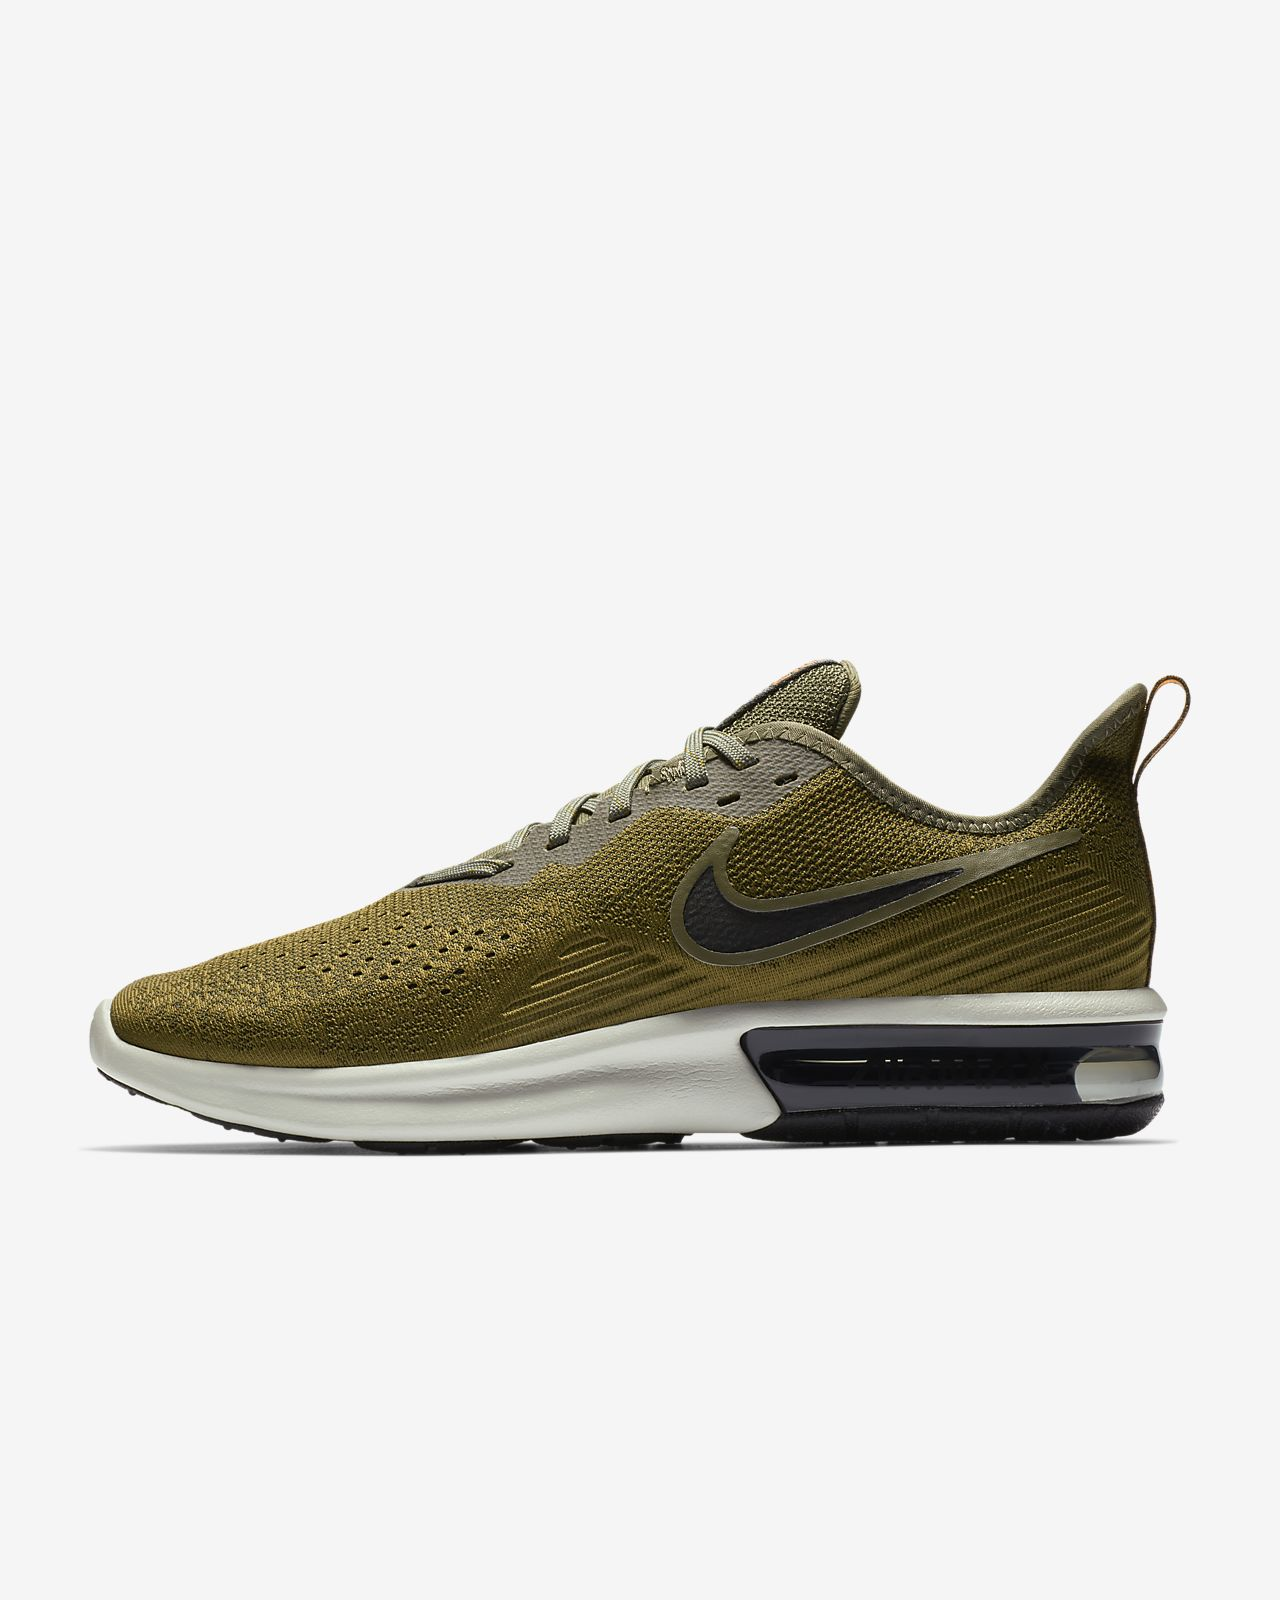 Max 4 Sequent Homme Air Chaussure Pour Be Nike Uw7gSEqcWT